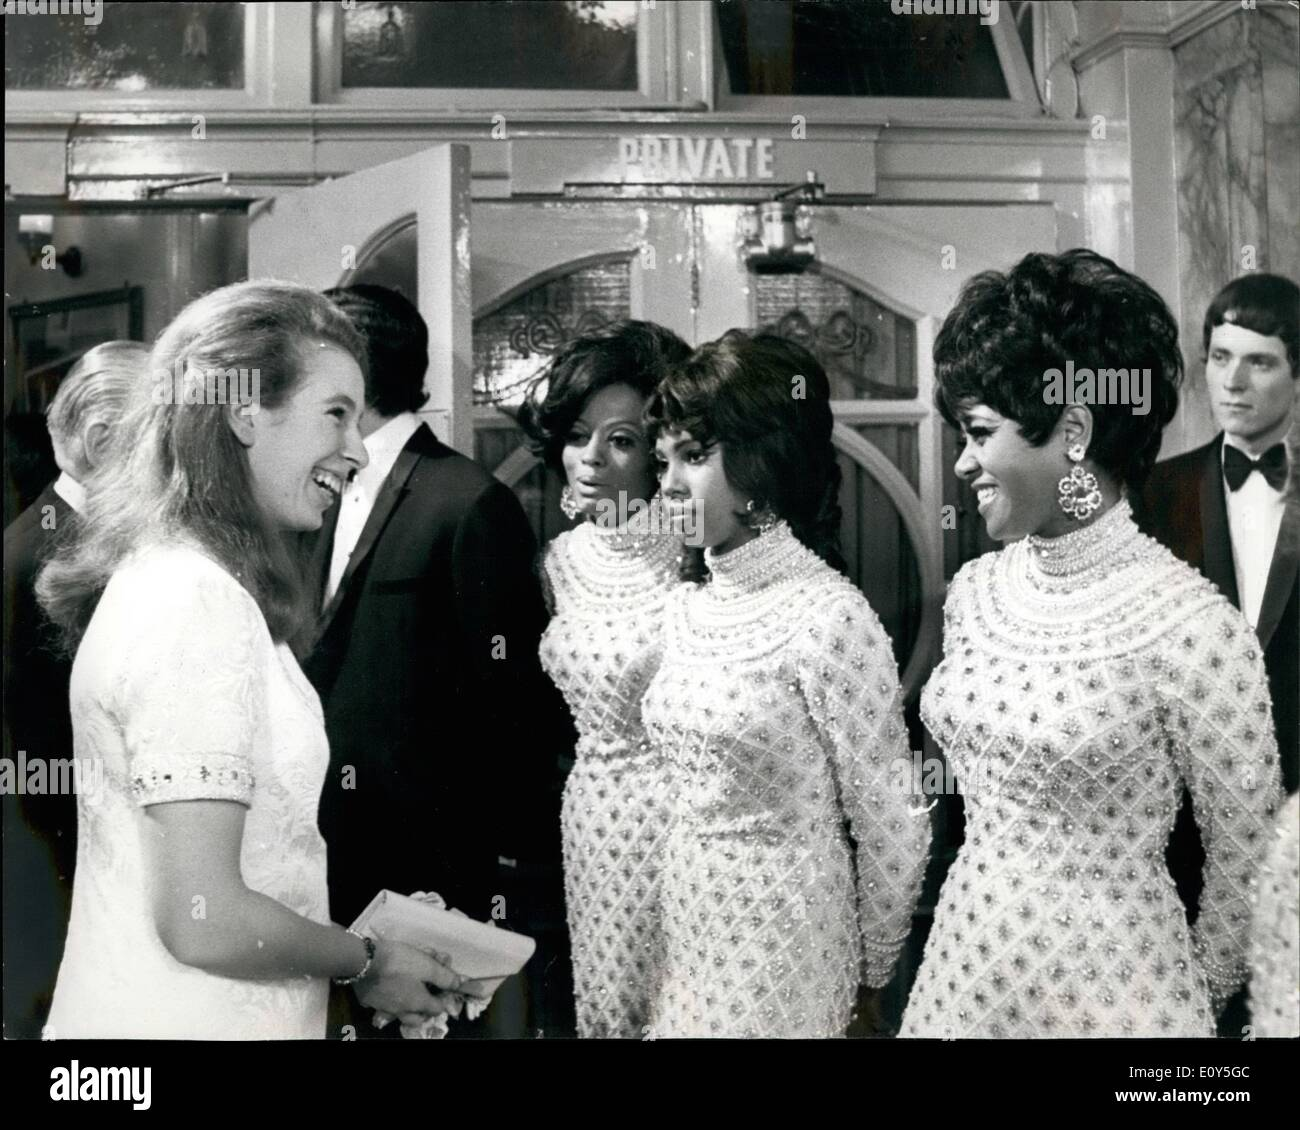 Nov. 11, 1968 - Royals Attend The Royal Variety Performance At The London Palladium: Queen Elizabeth, the Queen Mother, was accompanied by Princess Anne, Prince Charles, Princess Margaret, and her husband, Lord Snowdon, when they attended the royal Variety Performance at the London Palladium this evening in aid of the Variety Artistes 'Benevolent Fund. Photo Shows Princess Anne stops to chat to the Supreme Pop group when she met the stars after the show. - Stock Image